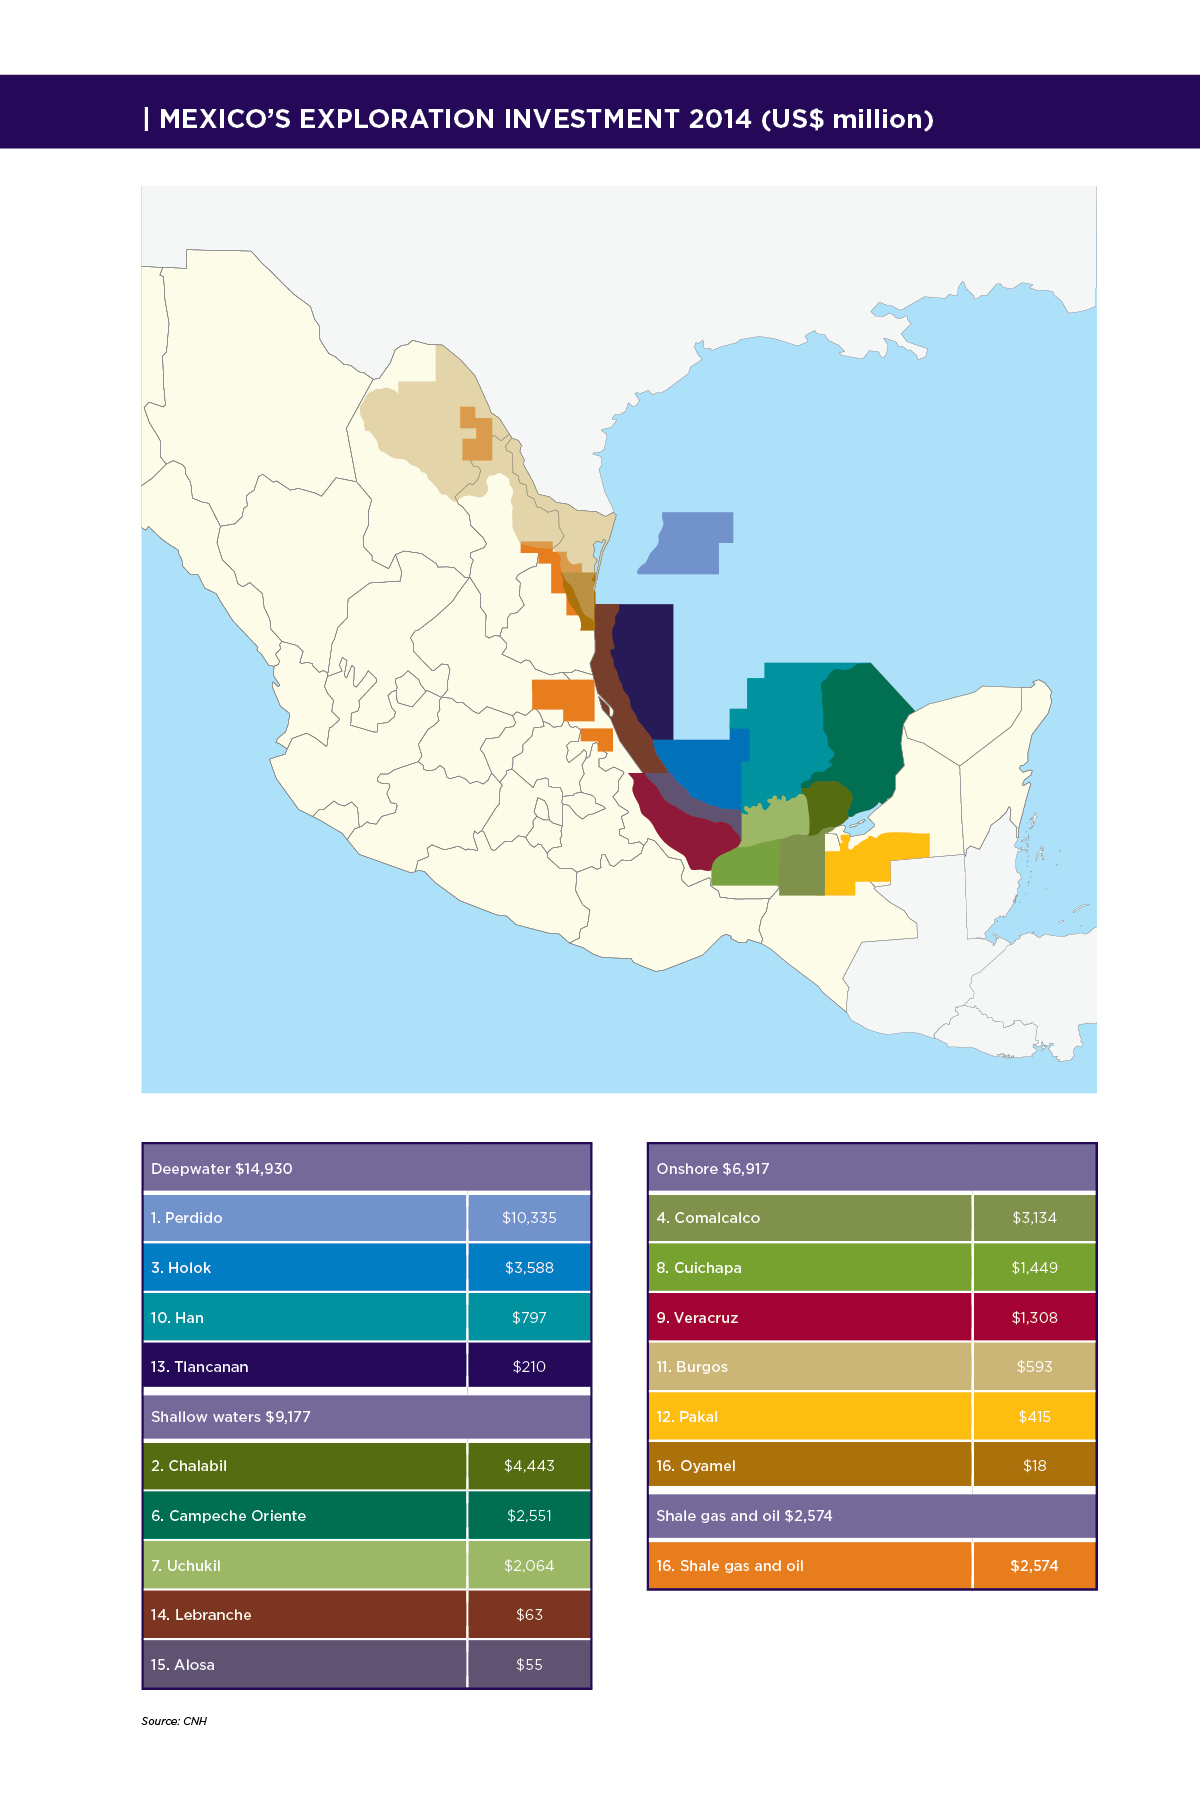 Mexico's Exploration Investment 2014